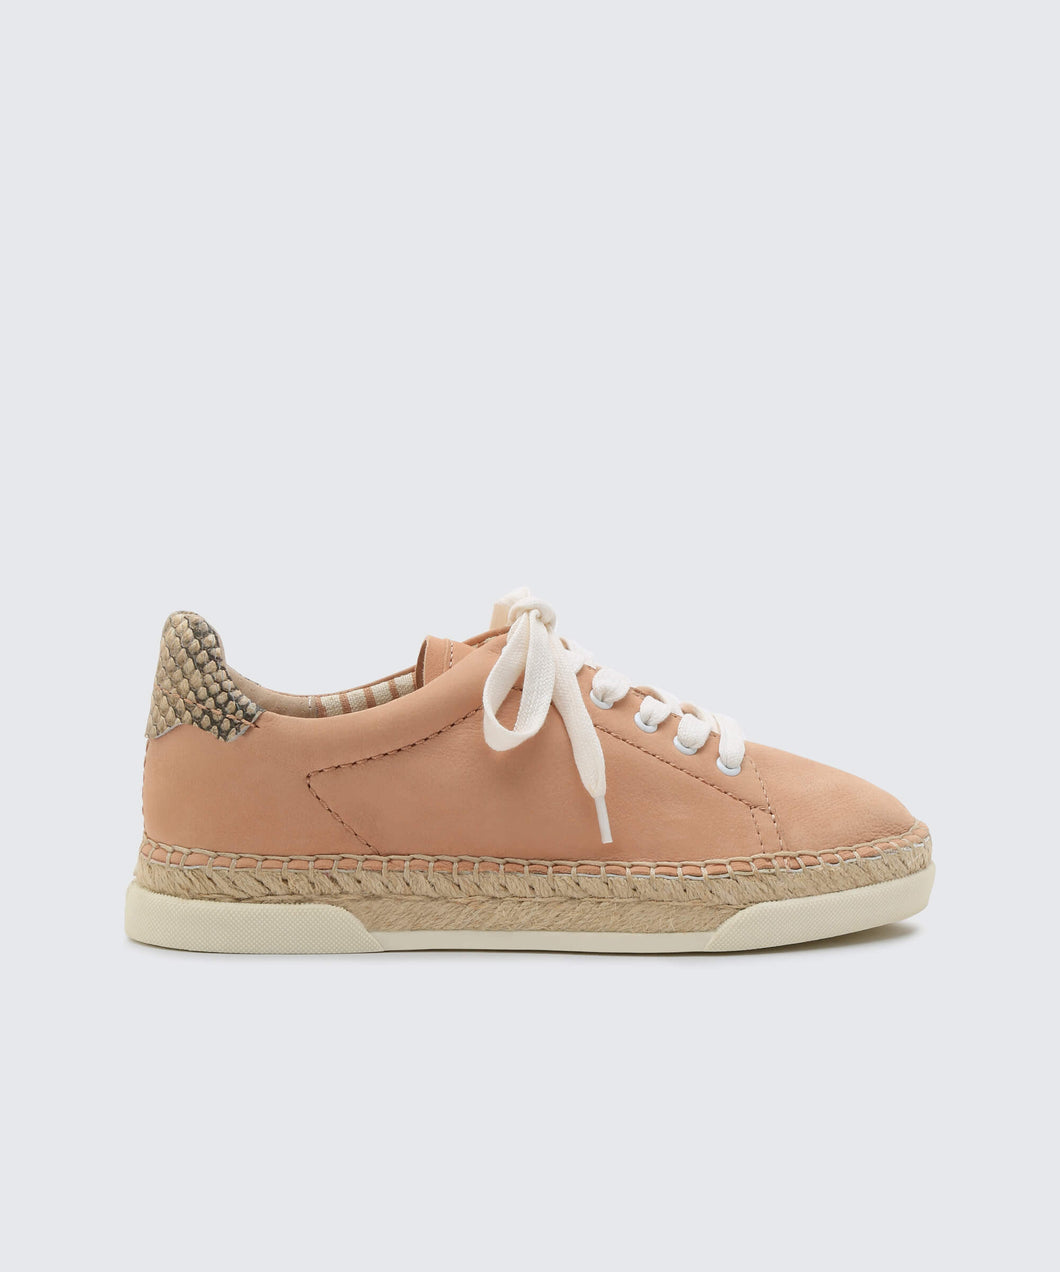 MADOX SNEAKERS NUDE -   Dolce Vita